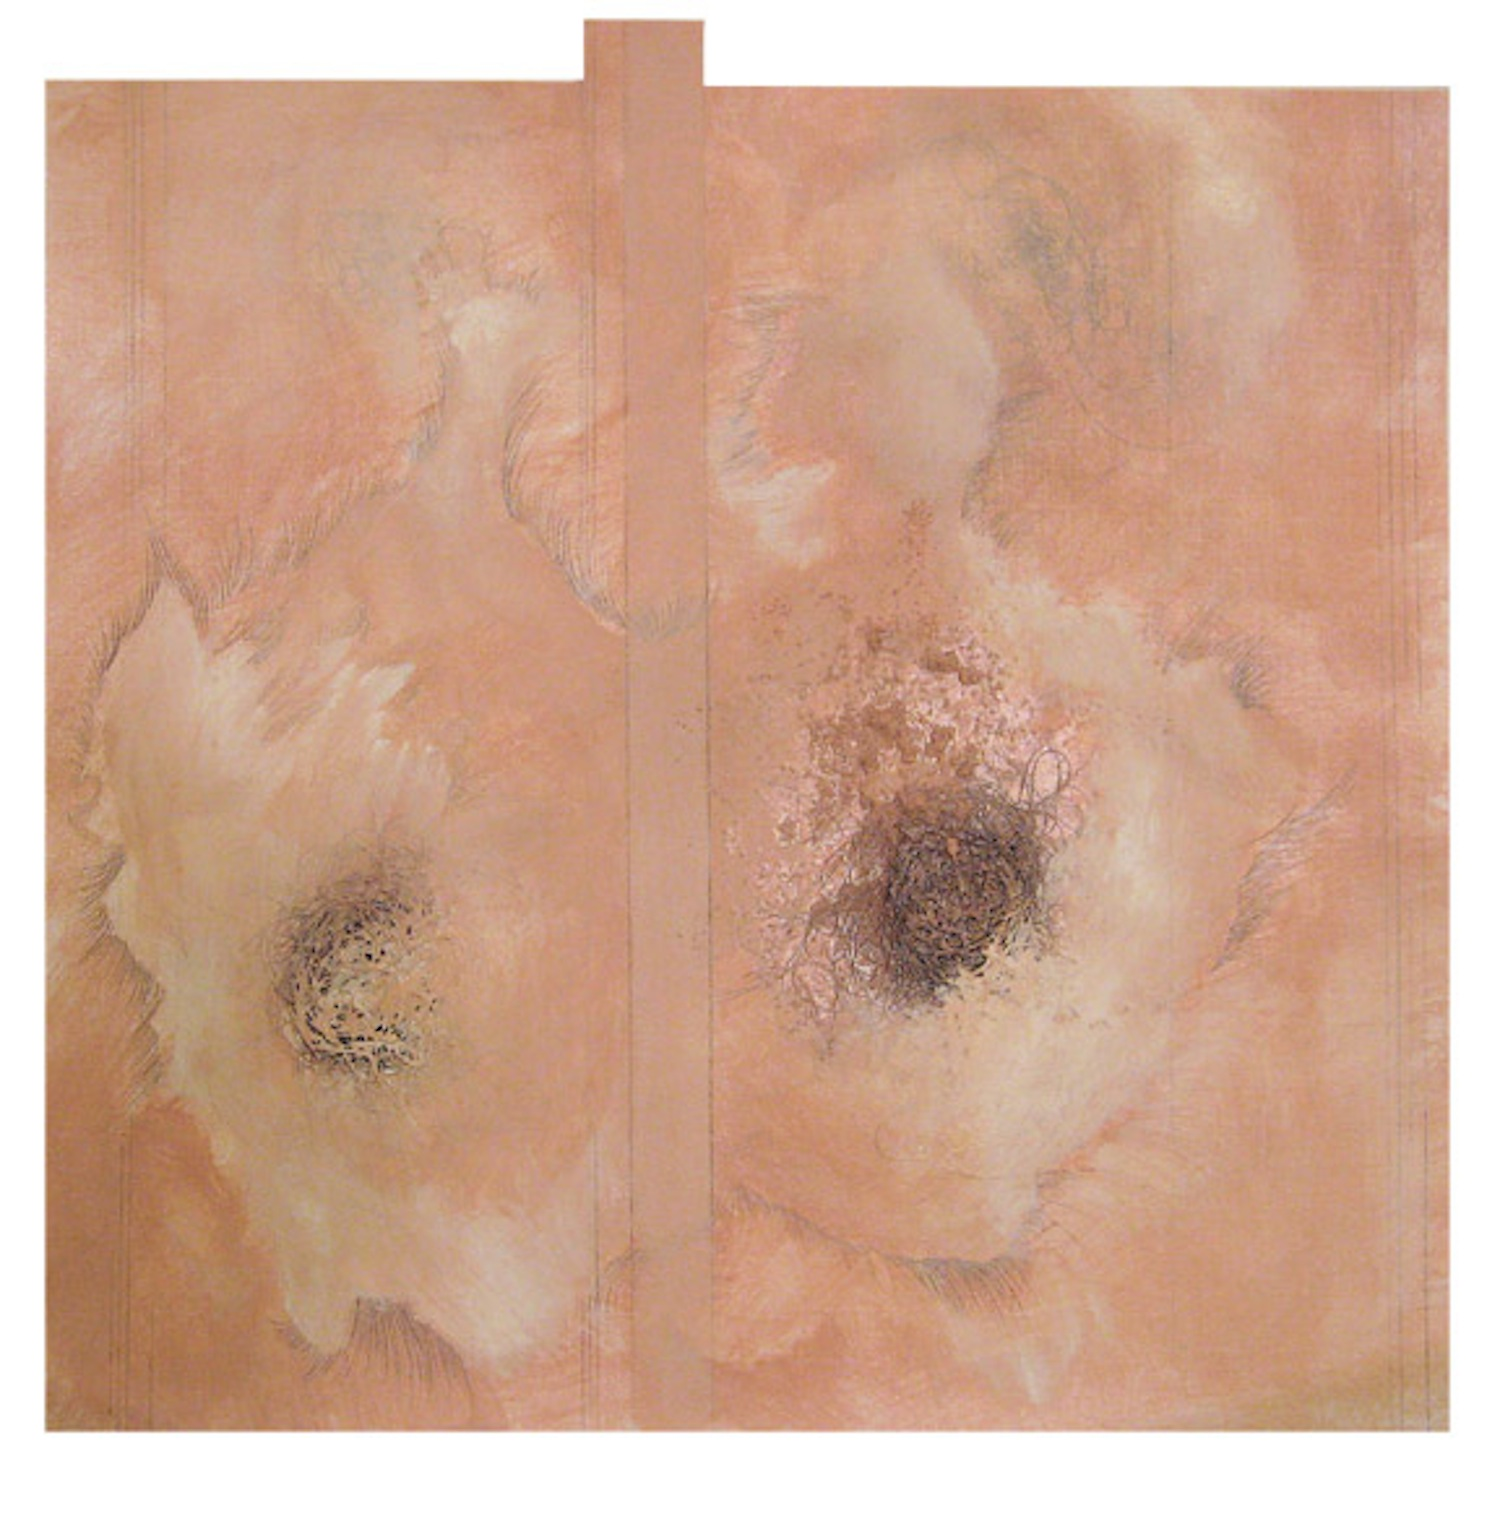 DOPPELGANGER SERIES: Untitled  artist's hair, salt, acrylic, graphite on paper with leather frame  16in. x 16in.  Private Collection